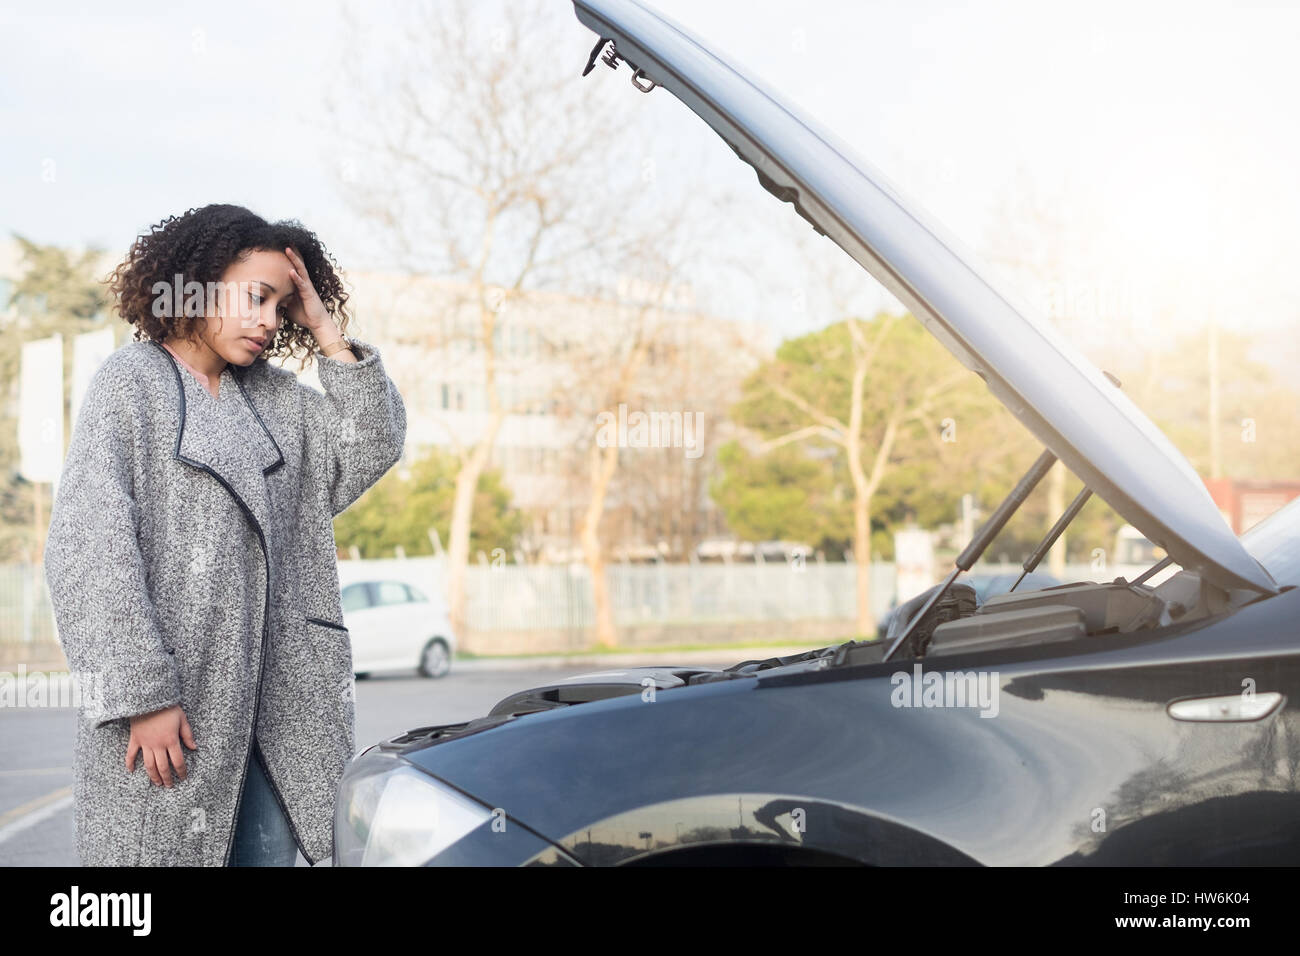 Desperate woman after checking her car broken engine - Stock Image